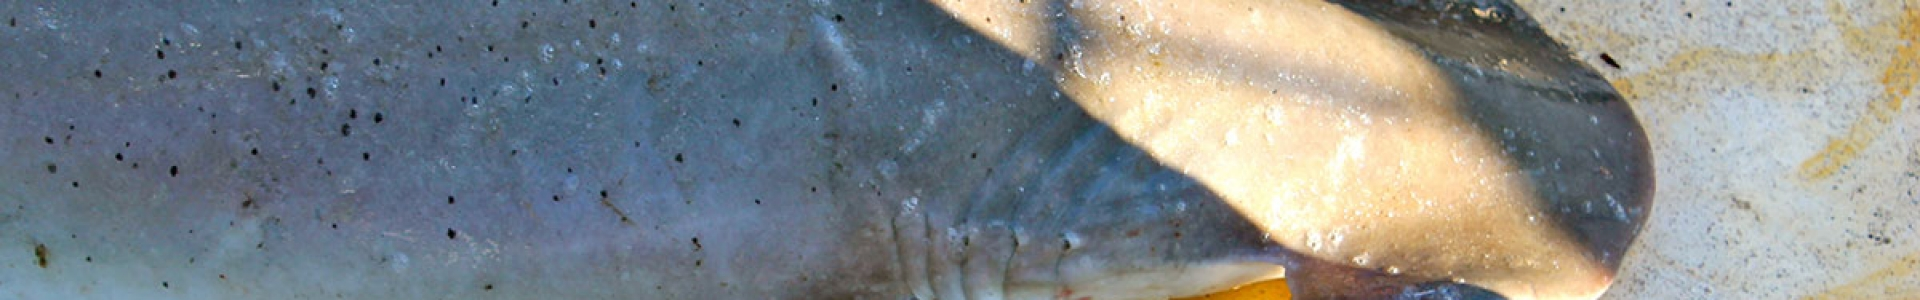 IMS-image-of-bonnethead-shark-during-tagging-credit-E-Woodward